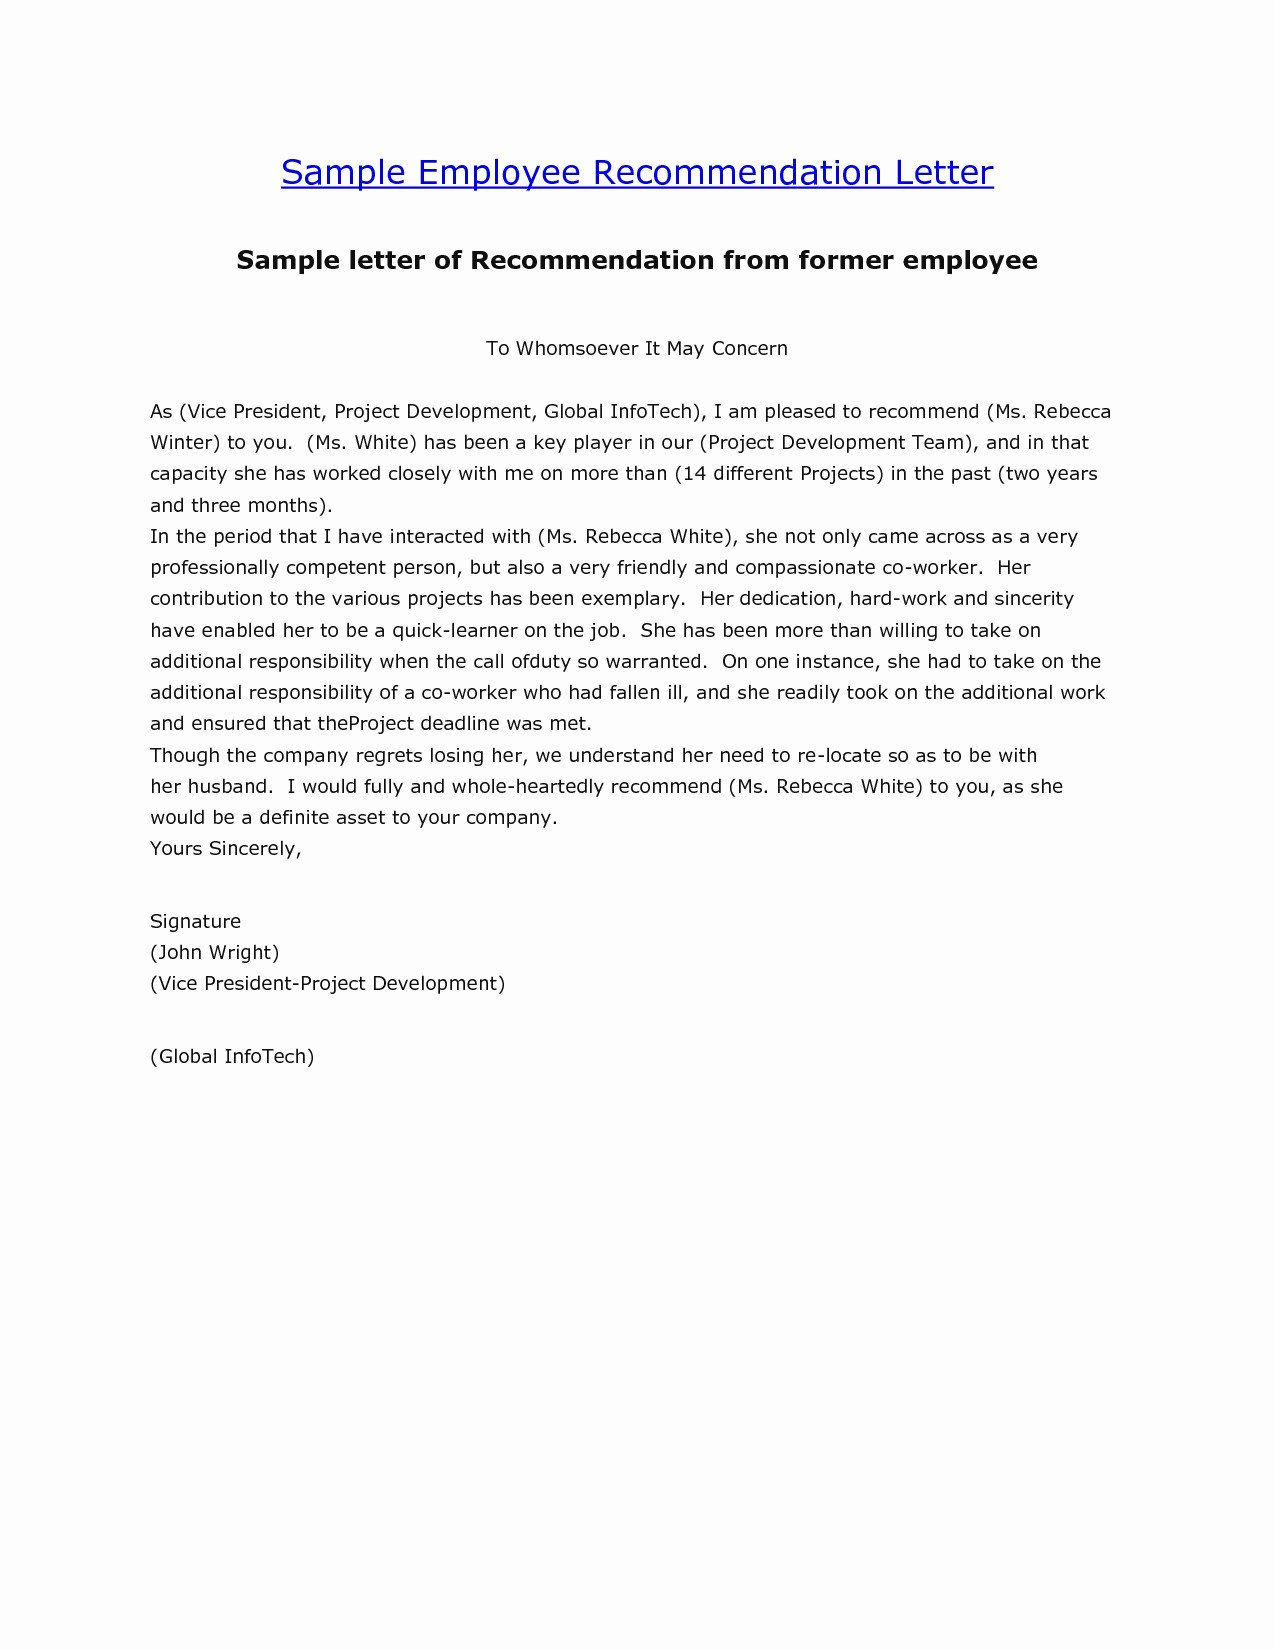 Letter Of Recommendation Letter Template Awesome [free] Letter Of Re Mendation Examples Samples